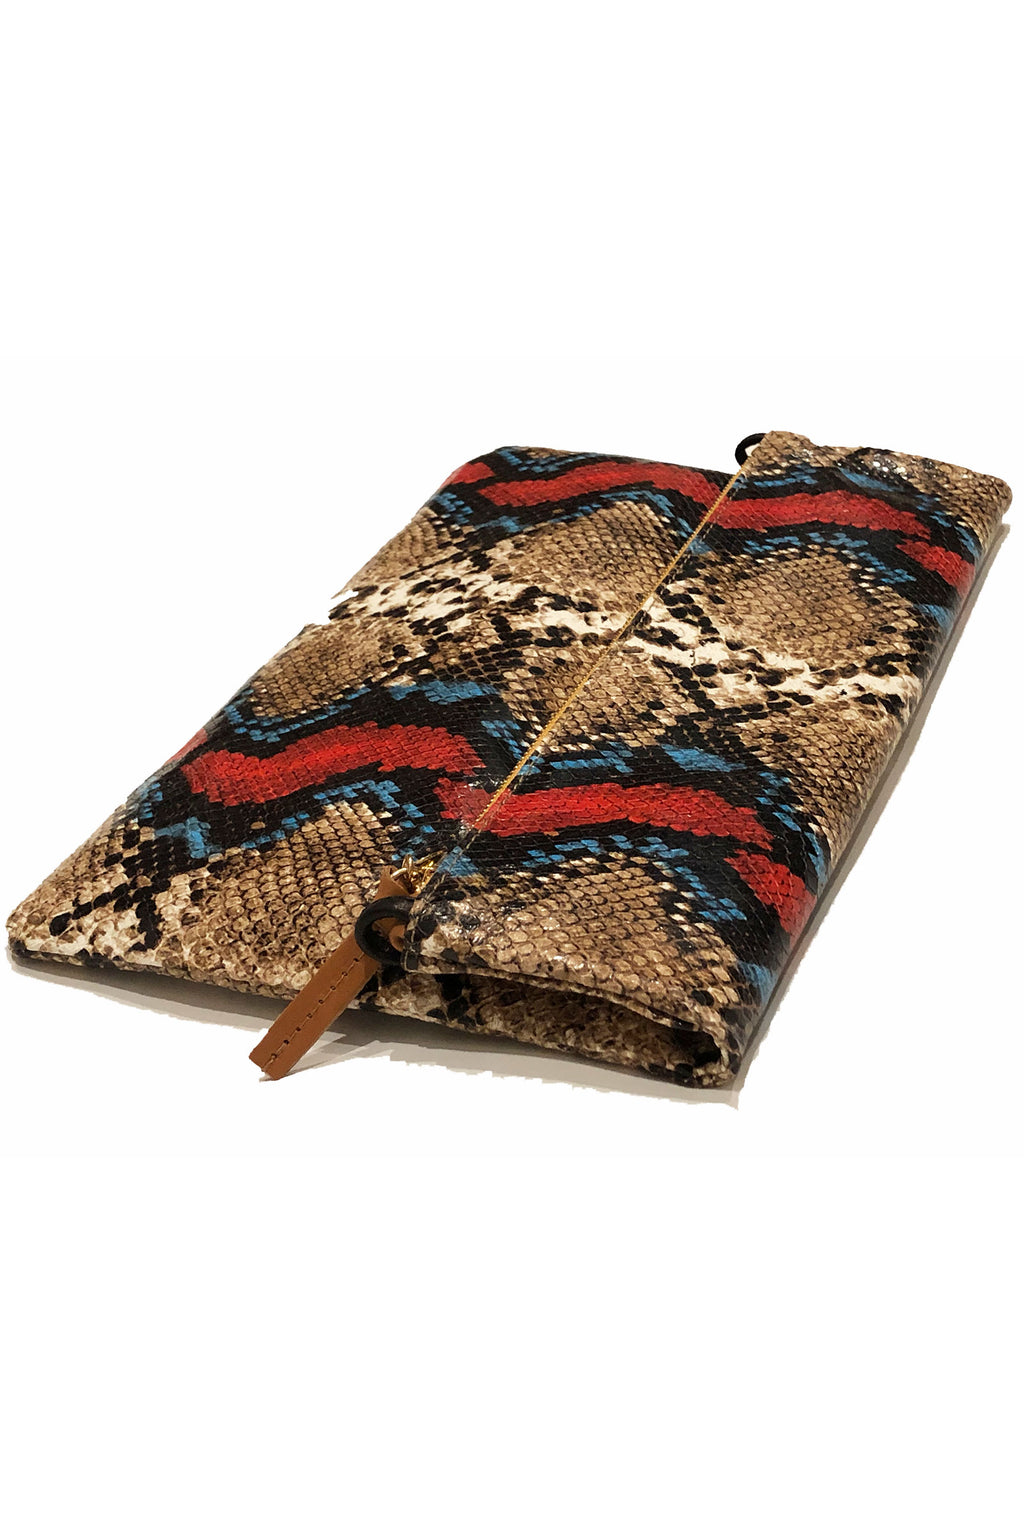 Clare Vivier Foldover Clutch with Tabs in Garden Snake